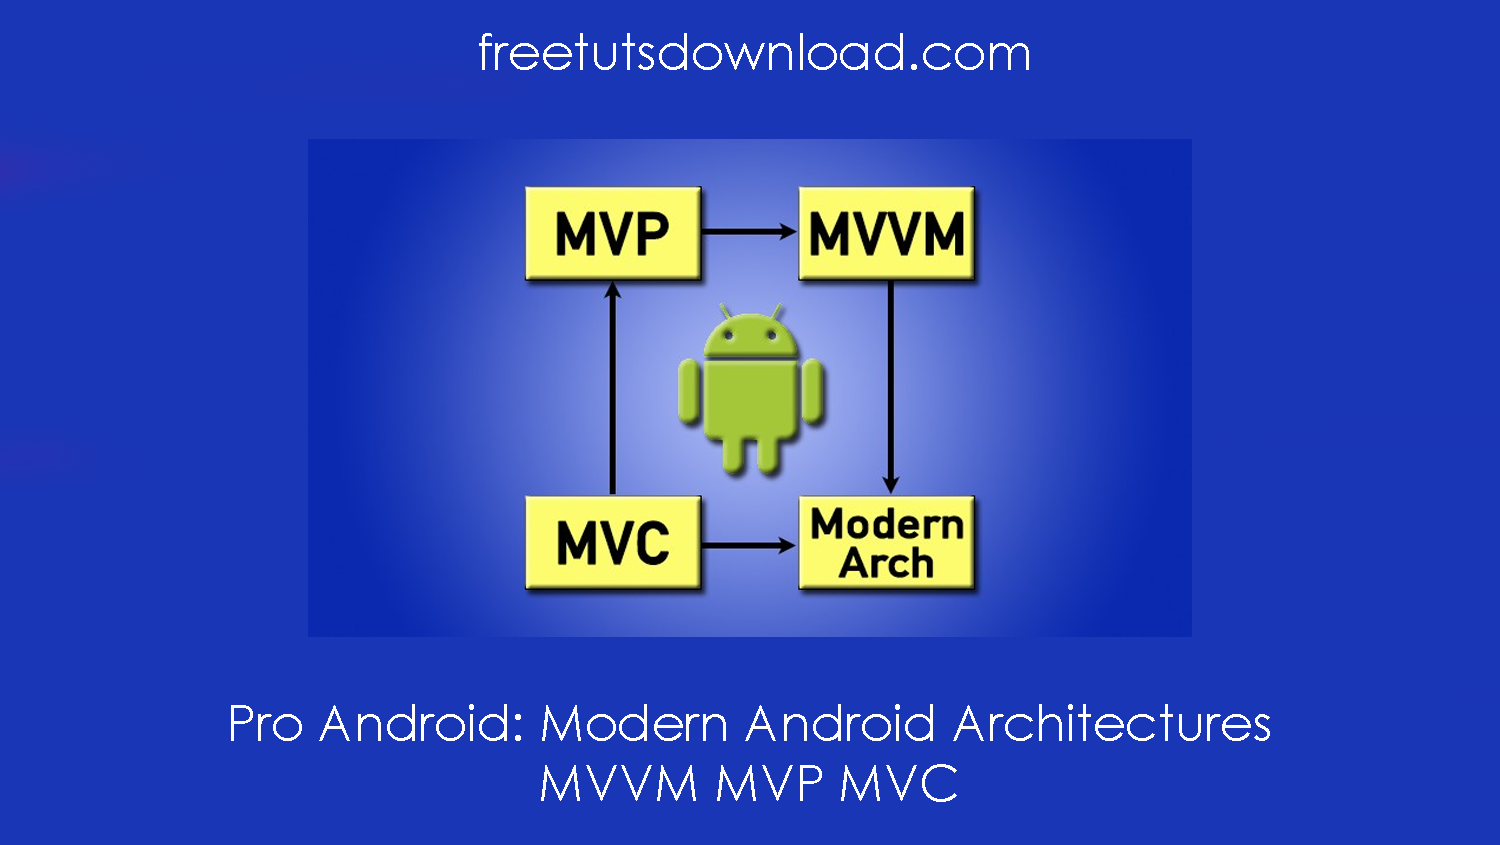 Pro Android: Modern Android Architectures - MVVM MVP MVC free download